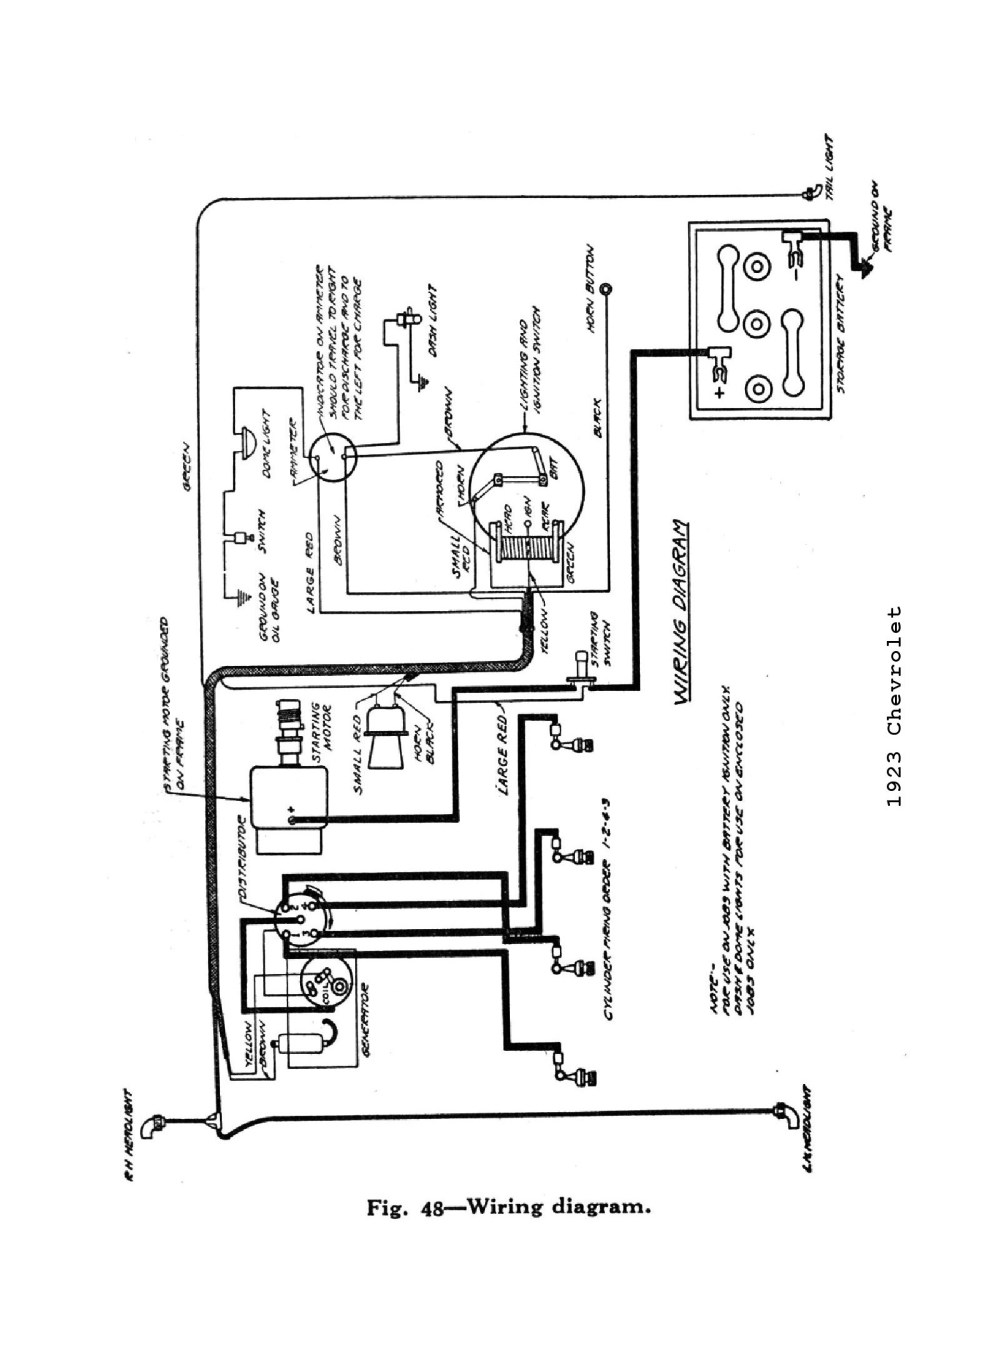 medium resolution of 1960 chevy truck wiring diagram wiring diagram source chevy wiring schematics 66 chevy heater wiring diagram free picture